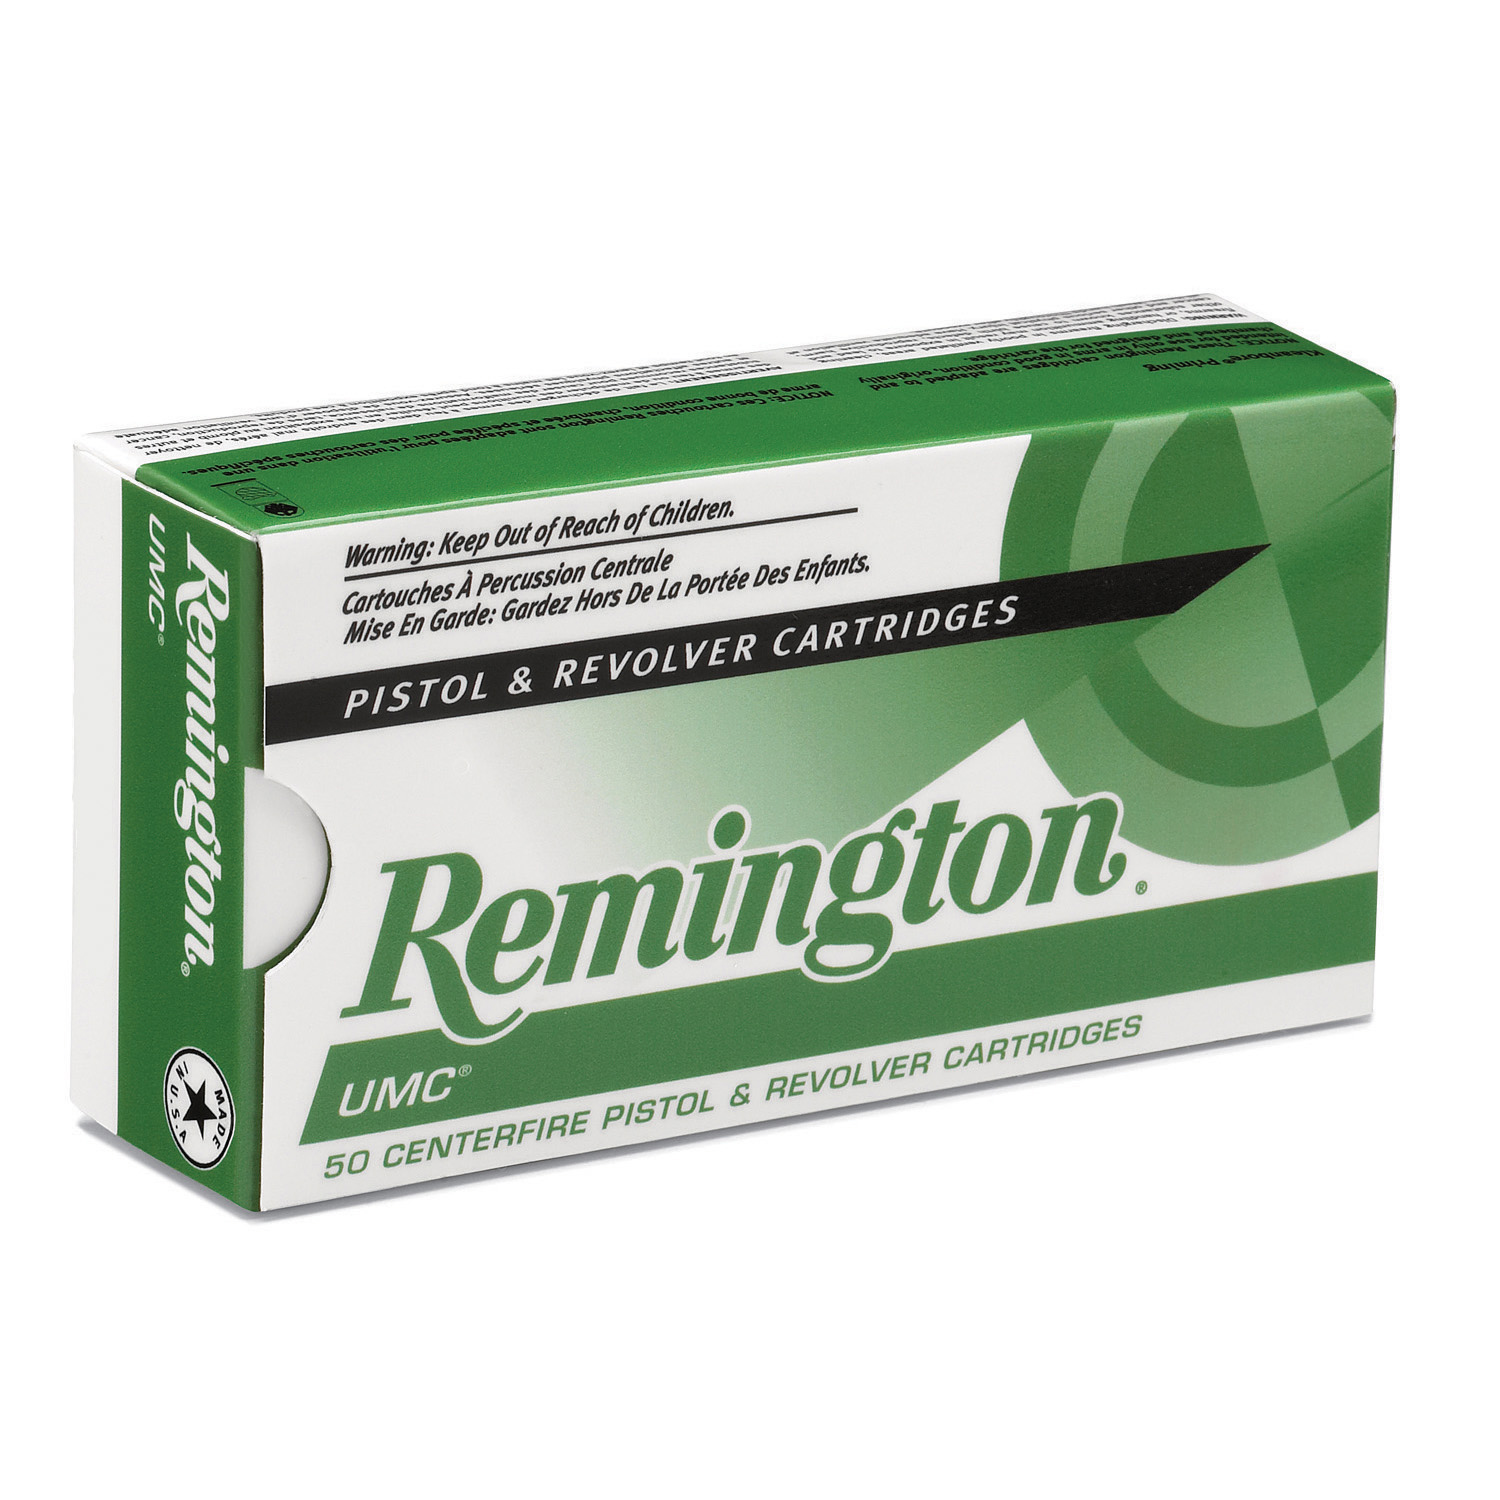 Remington UMC Handgun Ammunition, 9mm Luger, 115-gr, FMJ, 50 Rounds